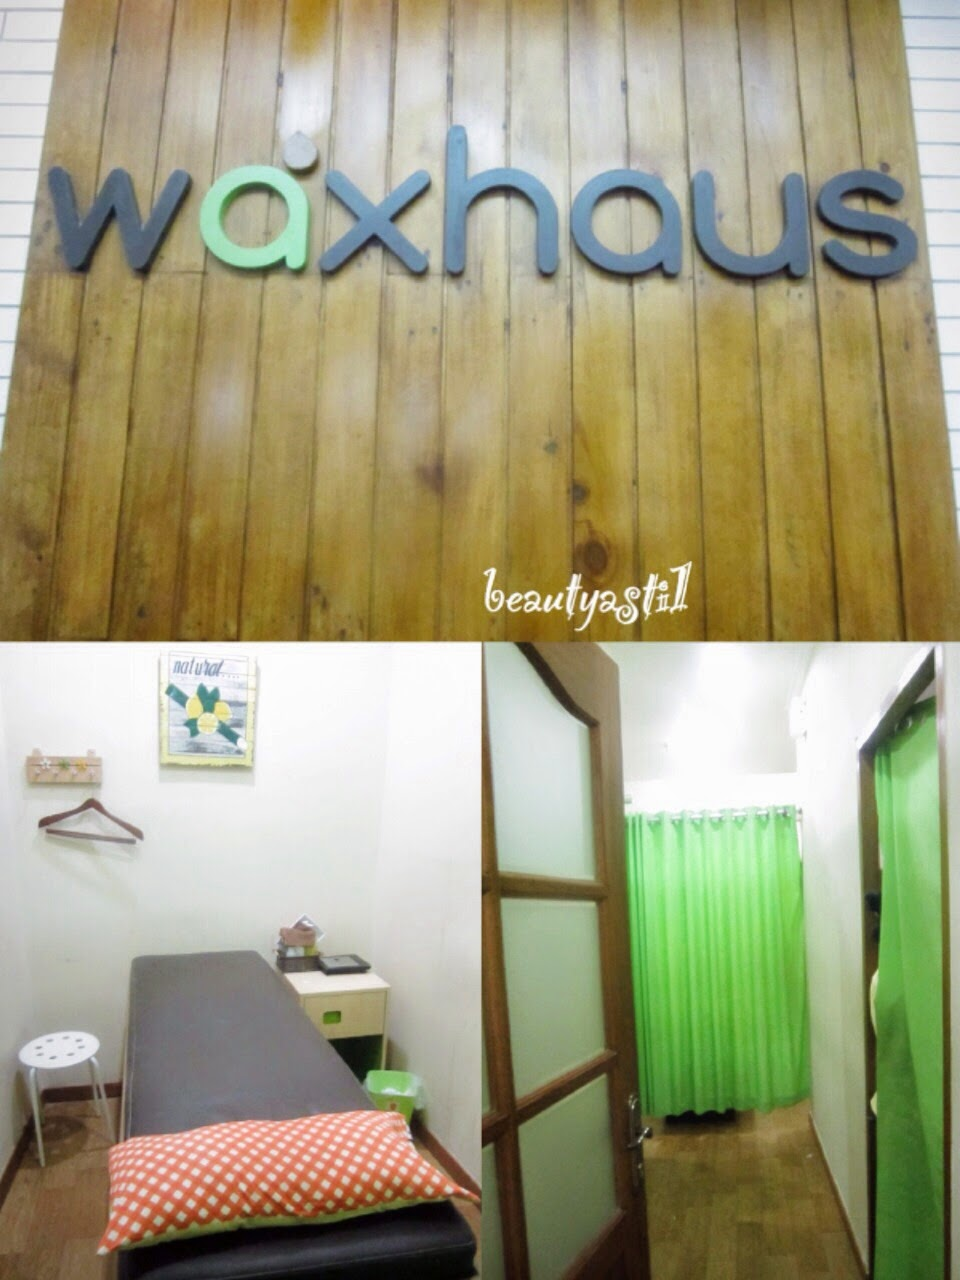 waxhaus-eyebrows-beauty-treatment-review.jpg